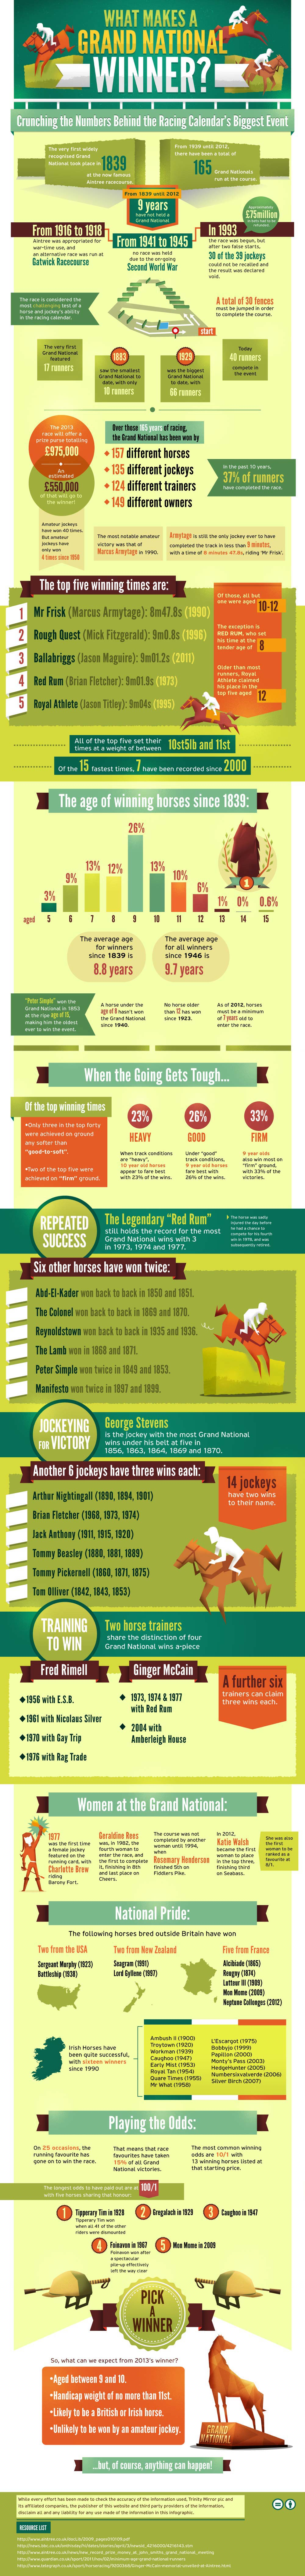 Grand National Horse Race Facts-Infographic